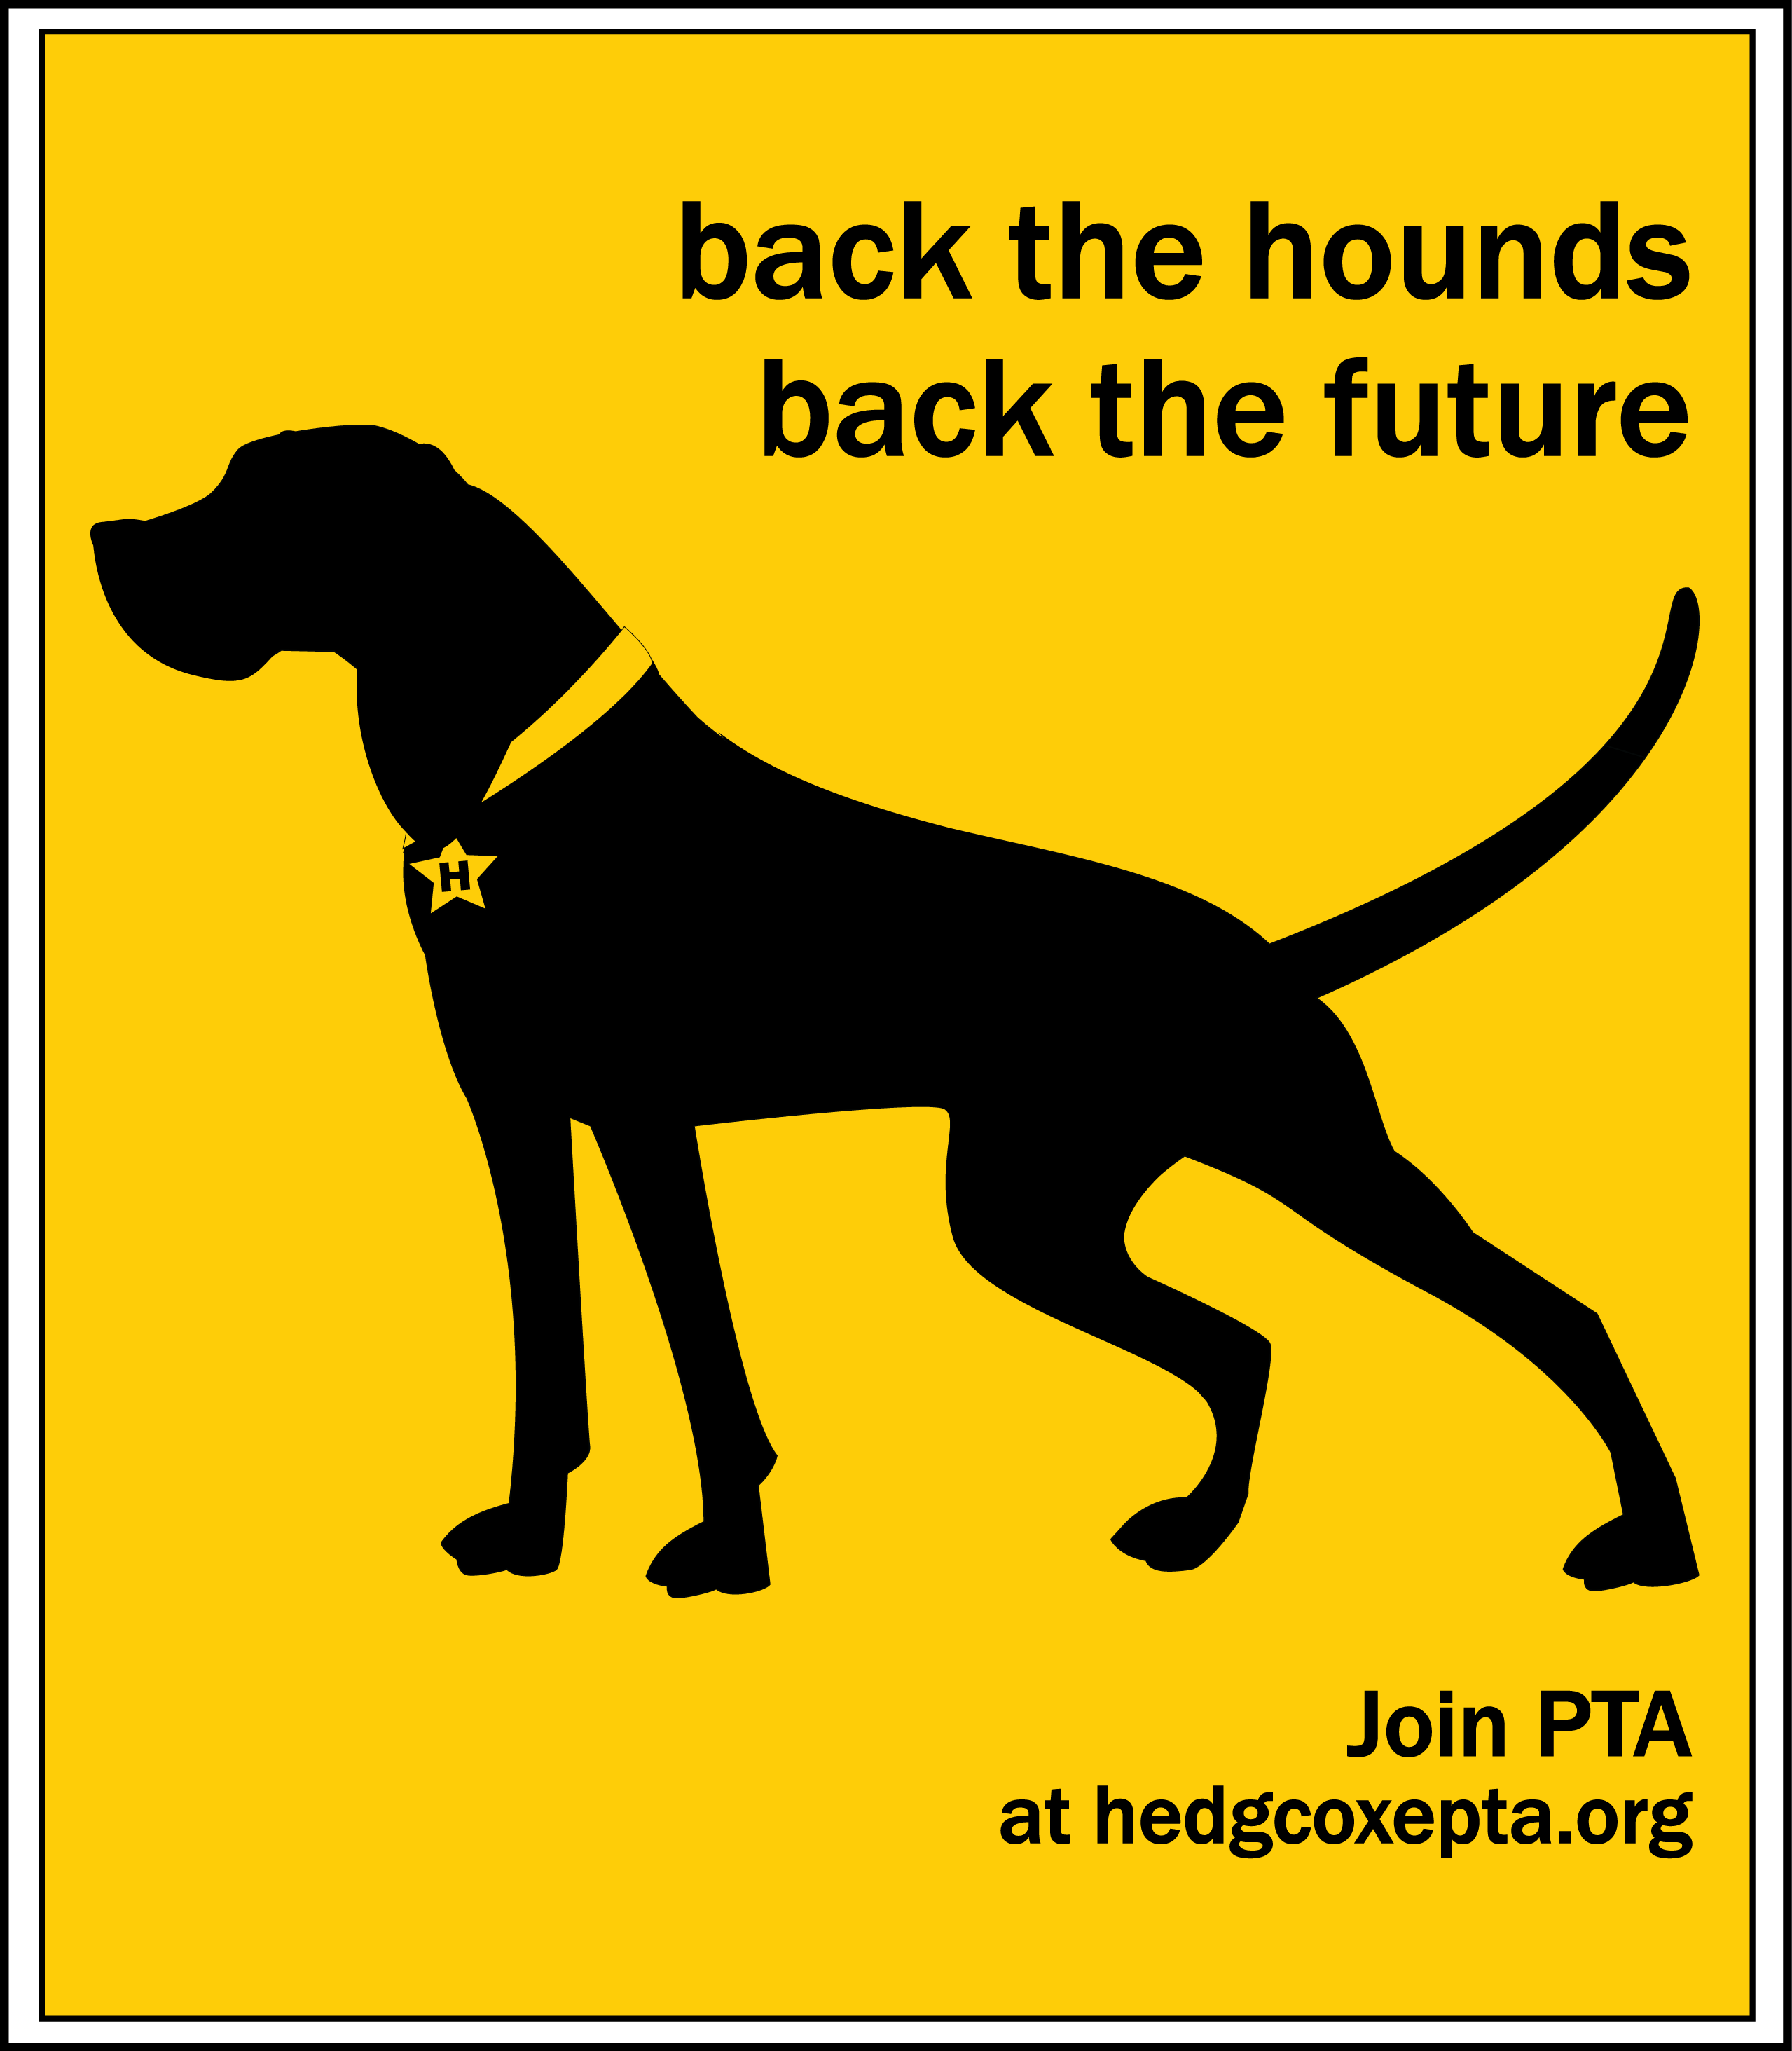 back the hounds poster